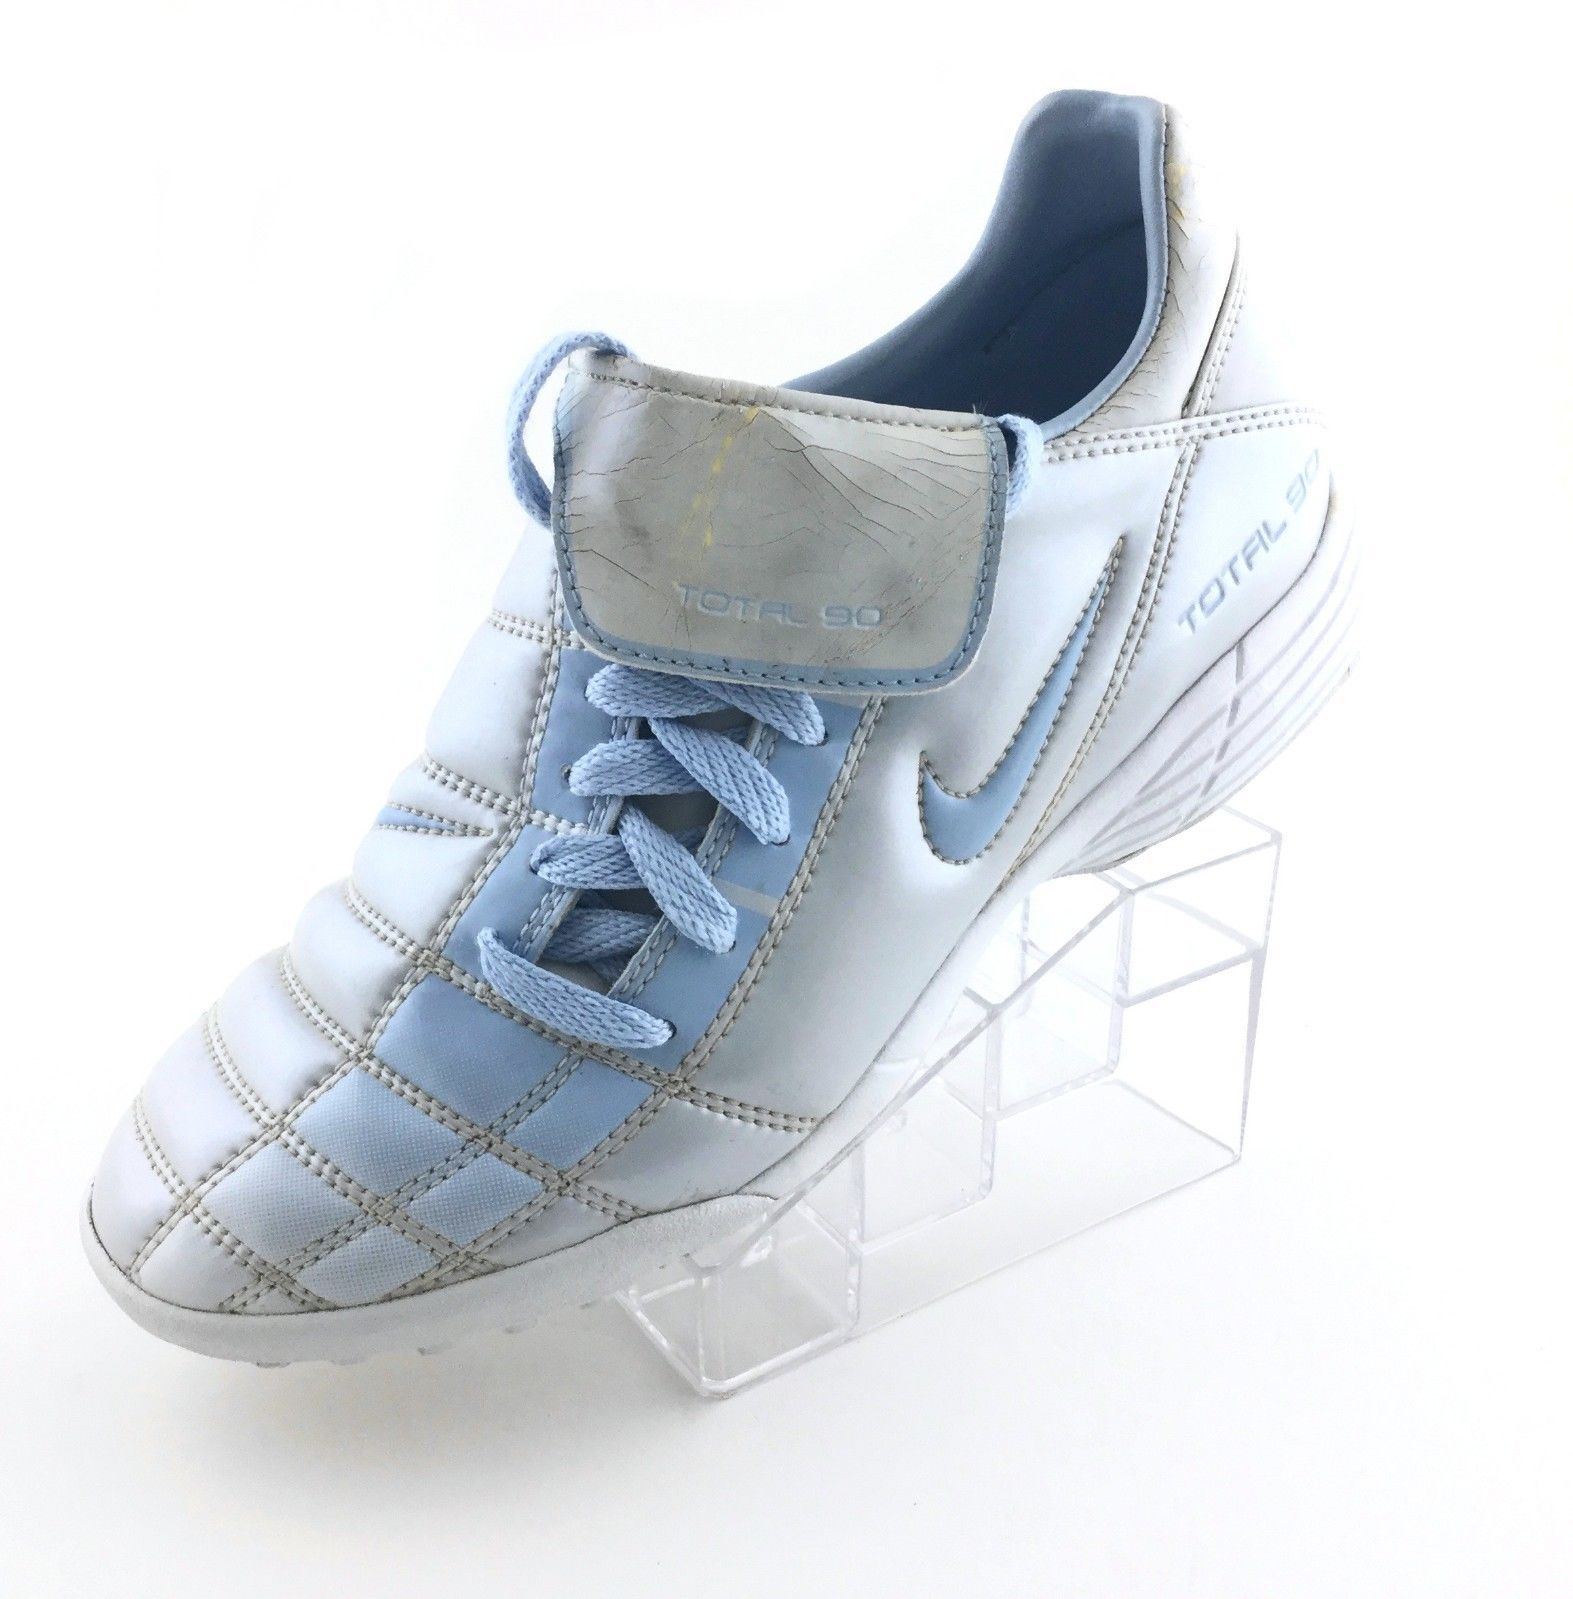 6c2634053367a 57. 57. Previous. Vintage Nike Total 90 Turf Soccer Shoes 031101 Size 6.5  Youth Silver RARE Retro. Vintage Nike Total 90 Turf ...